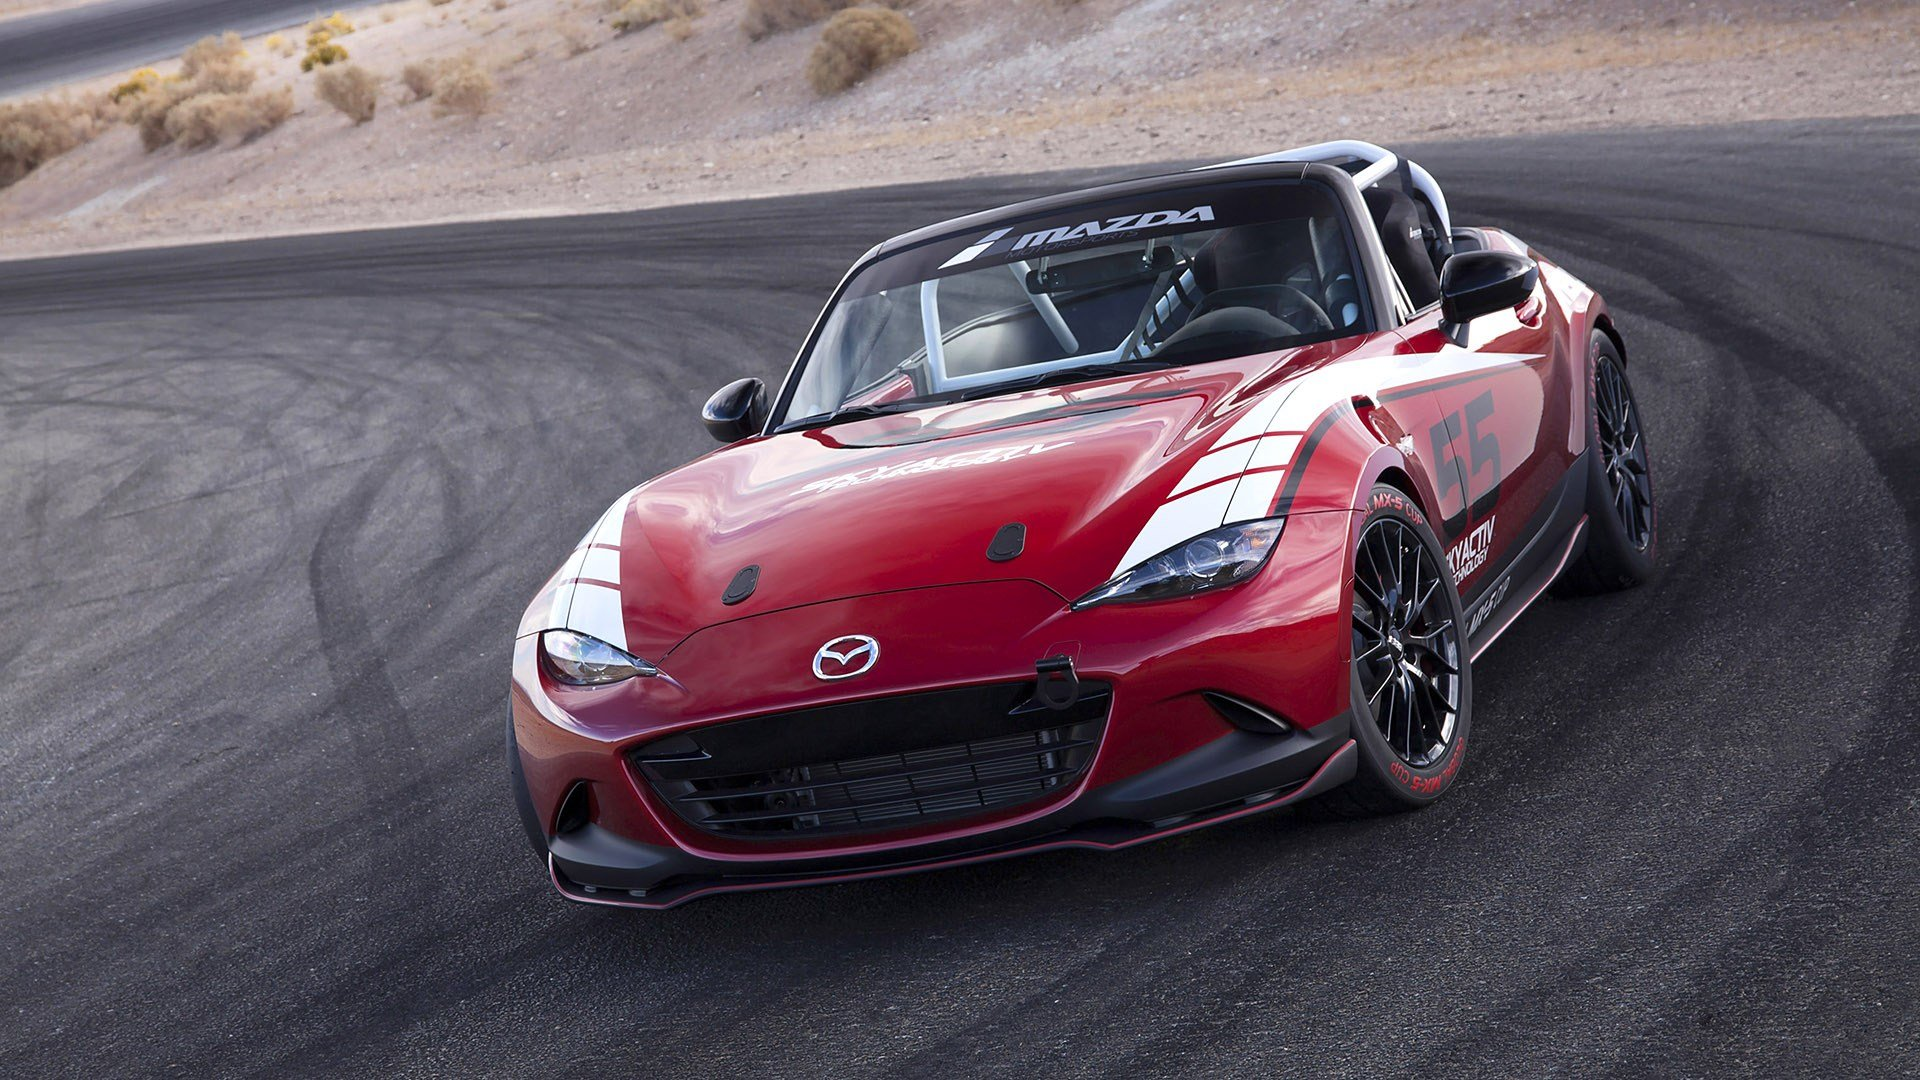 Latest 2016 Mazda Global Mx 5 Cup Racecar Wallpapers Hd Images Free Download